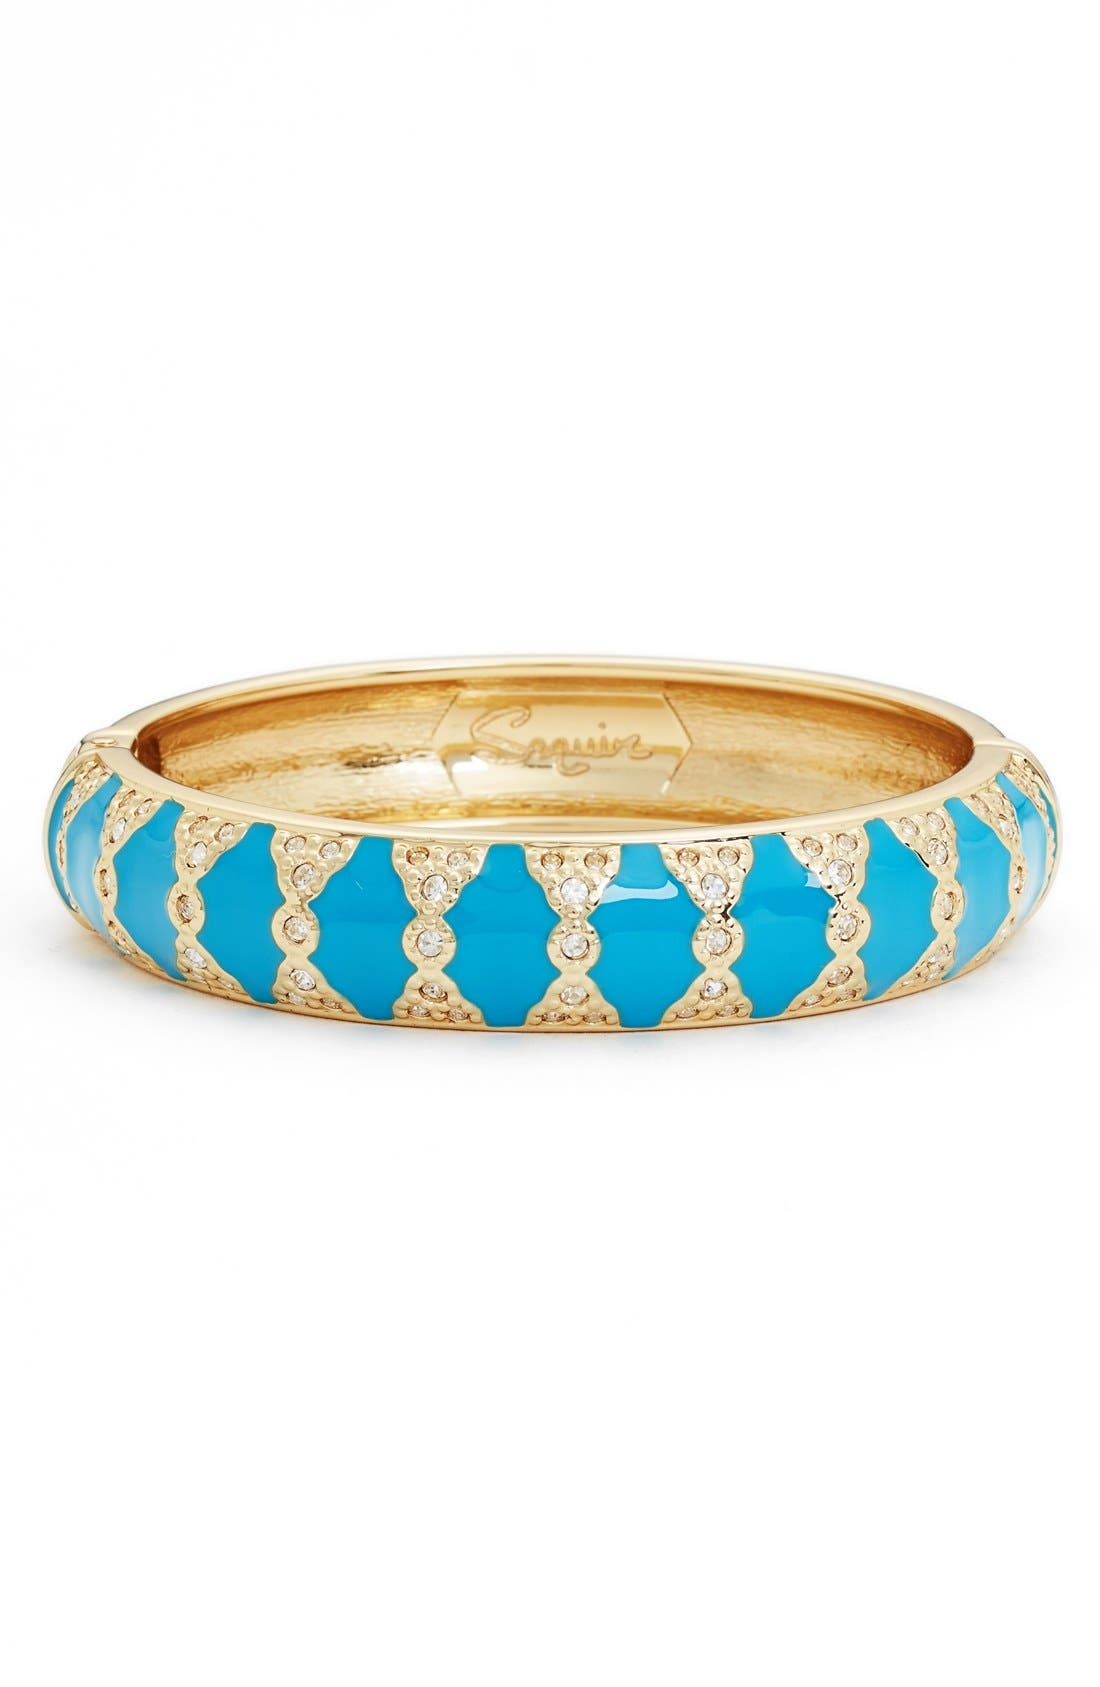 Moorish Embellished Bangle,                         Main,                         color, BLUE